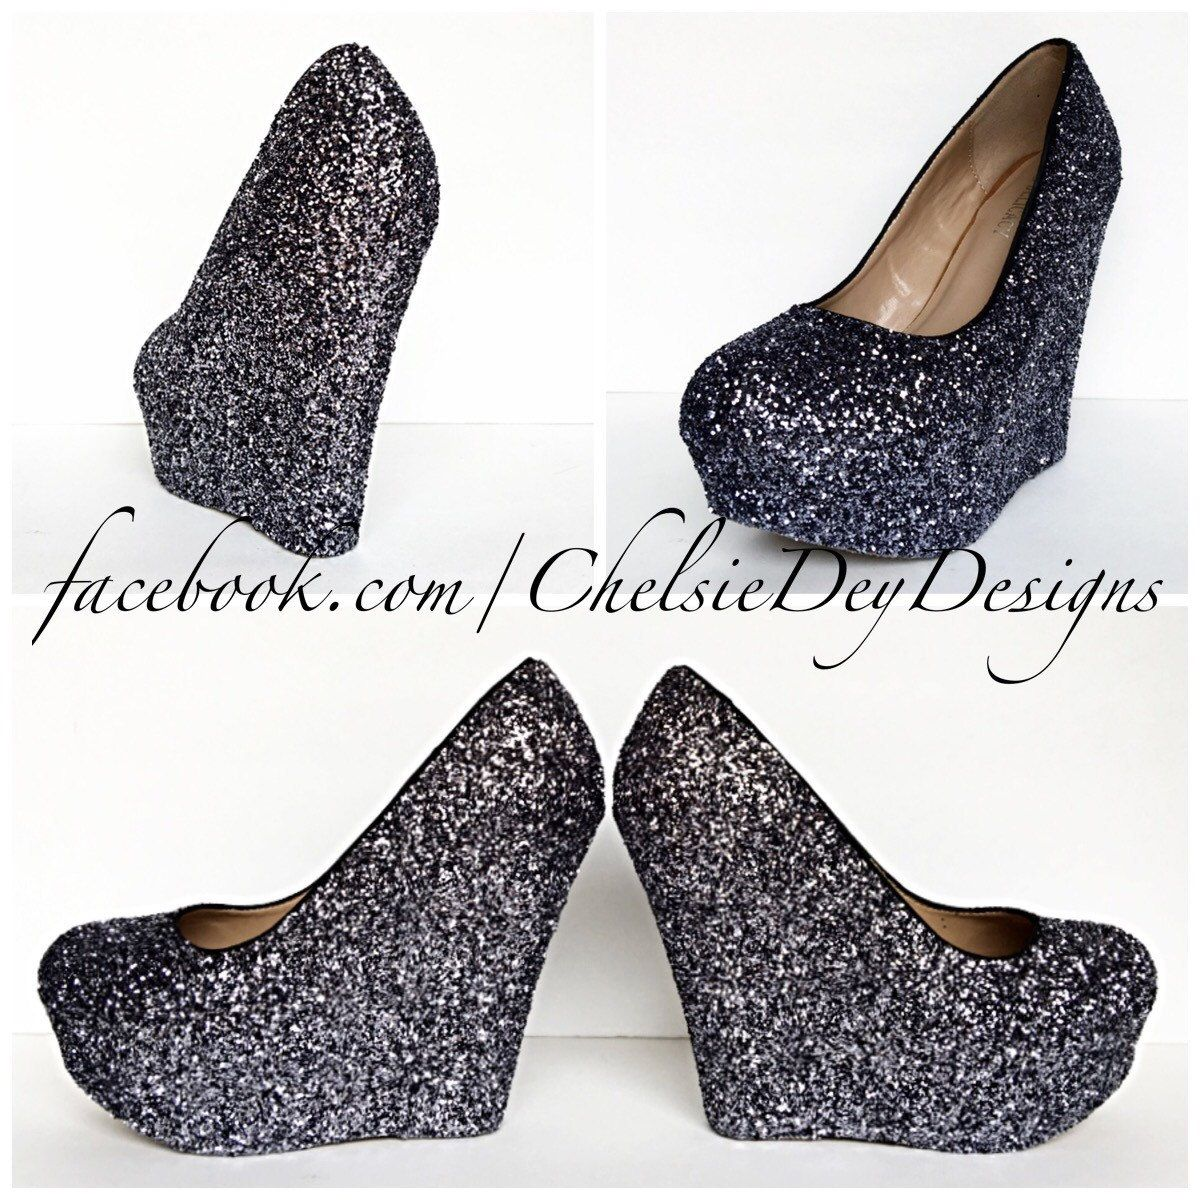 811b62357cf6 Gunmetal Glitter Wedges - Sparkly Charcoal Dark Grey Gray Platform Heel -  Glitzy Wedding Heels - Prom Wedges - pinned by pin4etsy.com